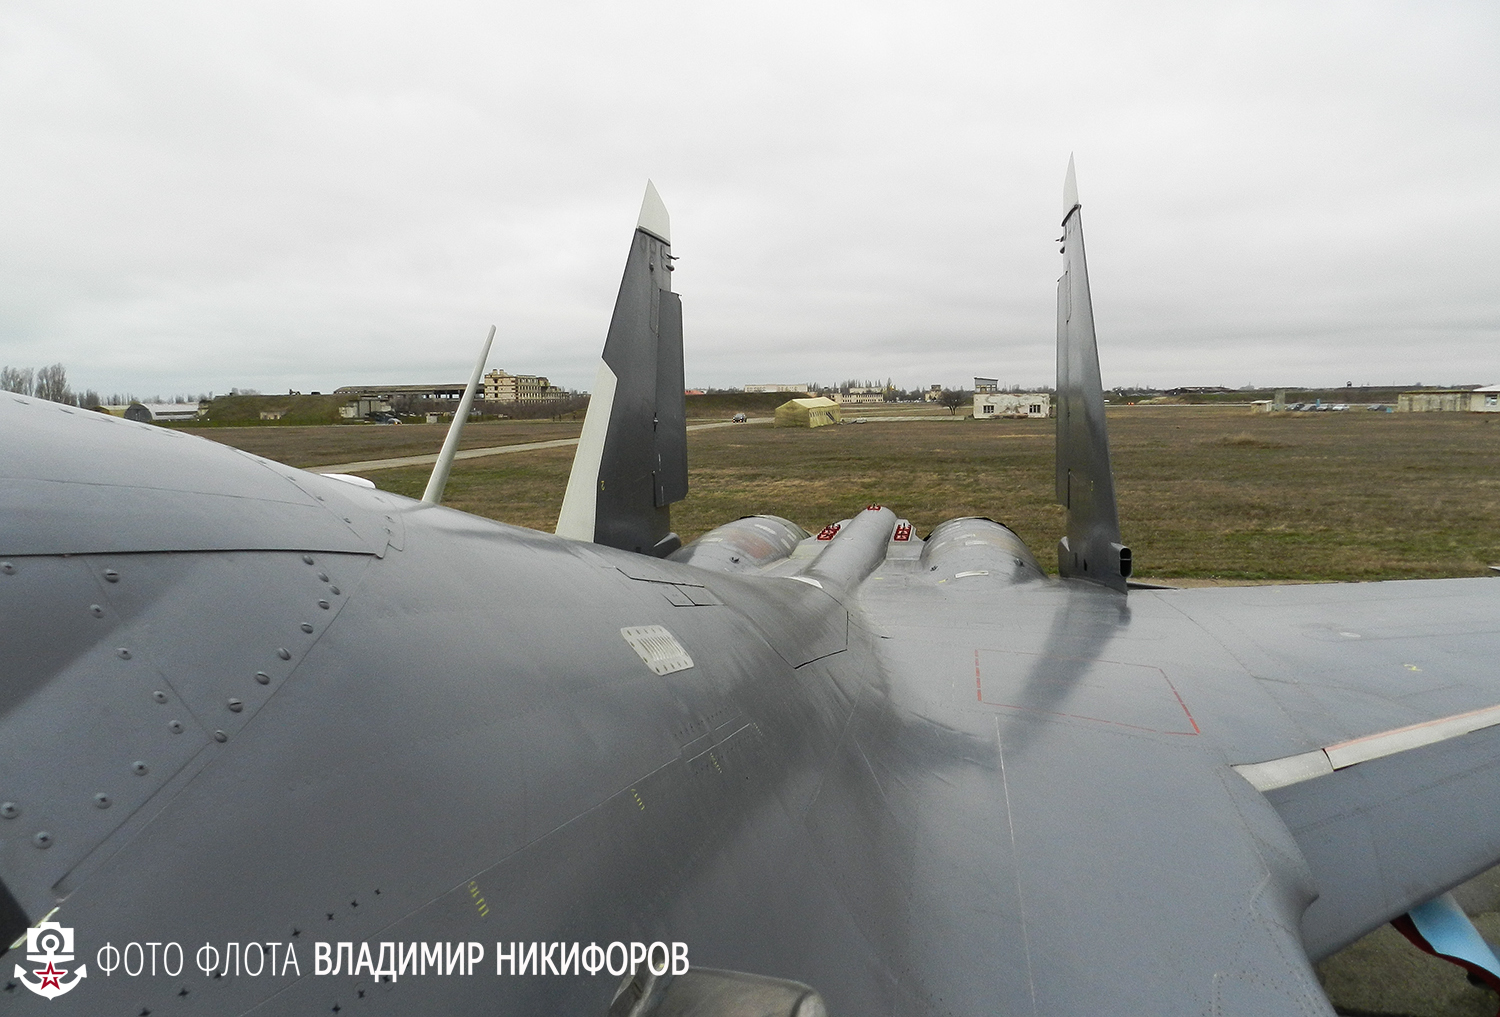 SU-30MKI (Flanker H by NATO). 0_d1c3c_6a9c470a_orig